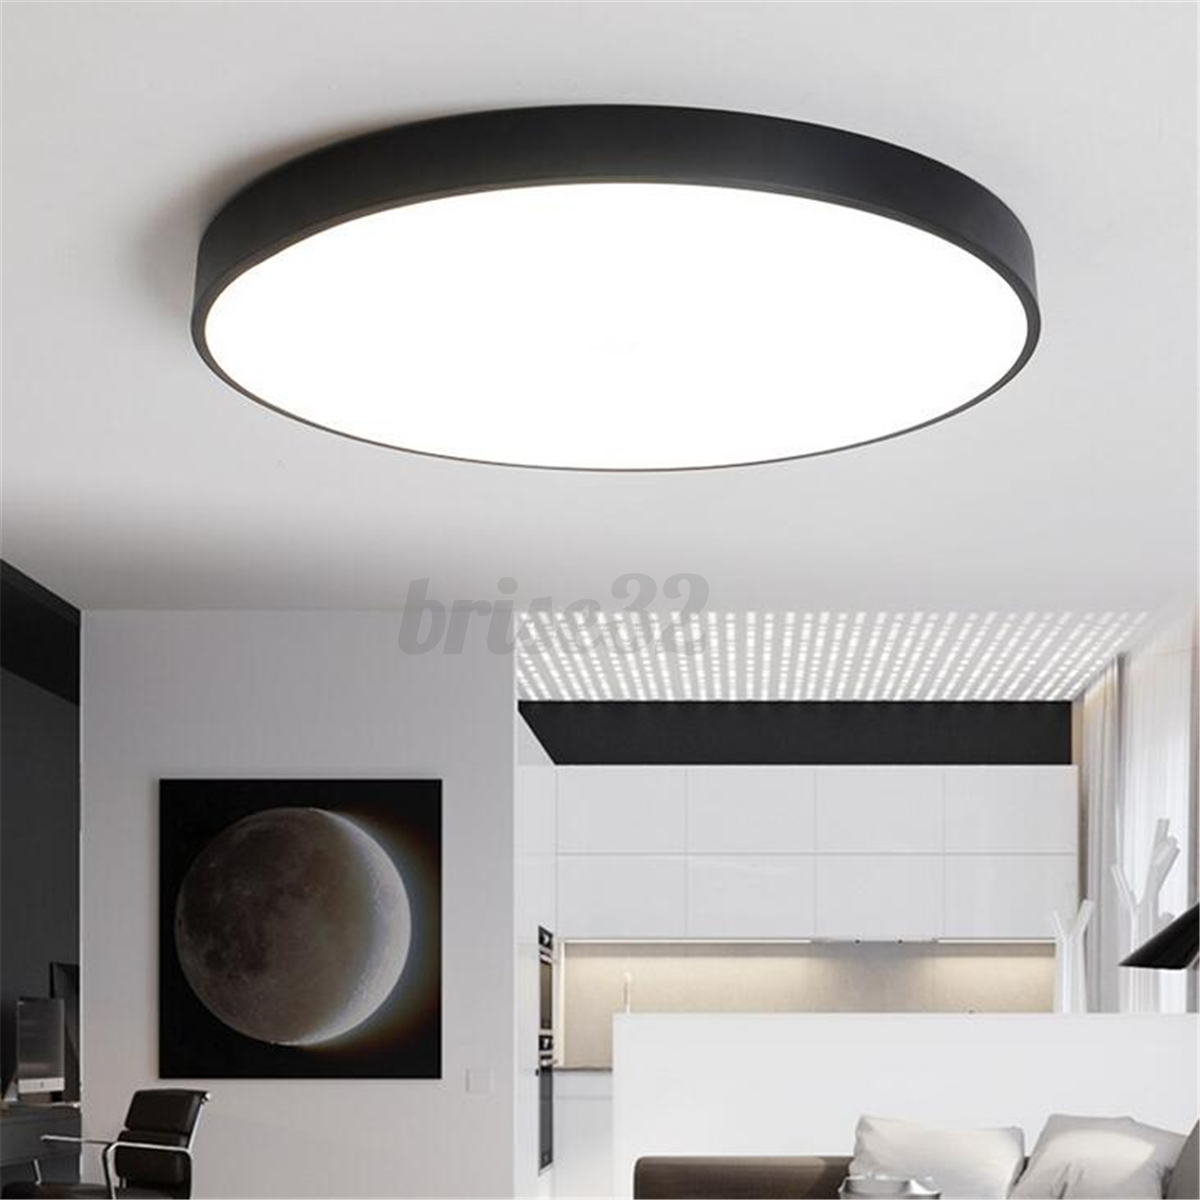 round led ceiling down light fixture home bedroom living 14190 | f6822627968c5633cd31d68d2493949993e6a9e6b4a5ac149caac44eba14bea78646c6c6359bb5b455c843c8f521cc